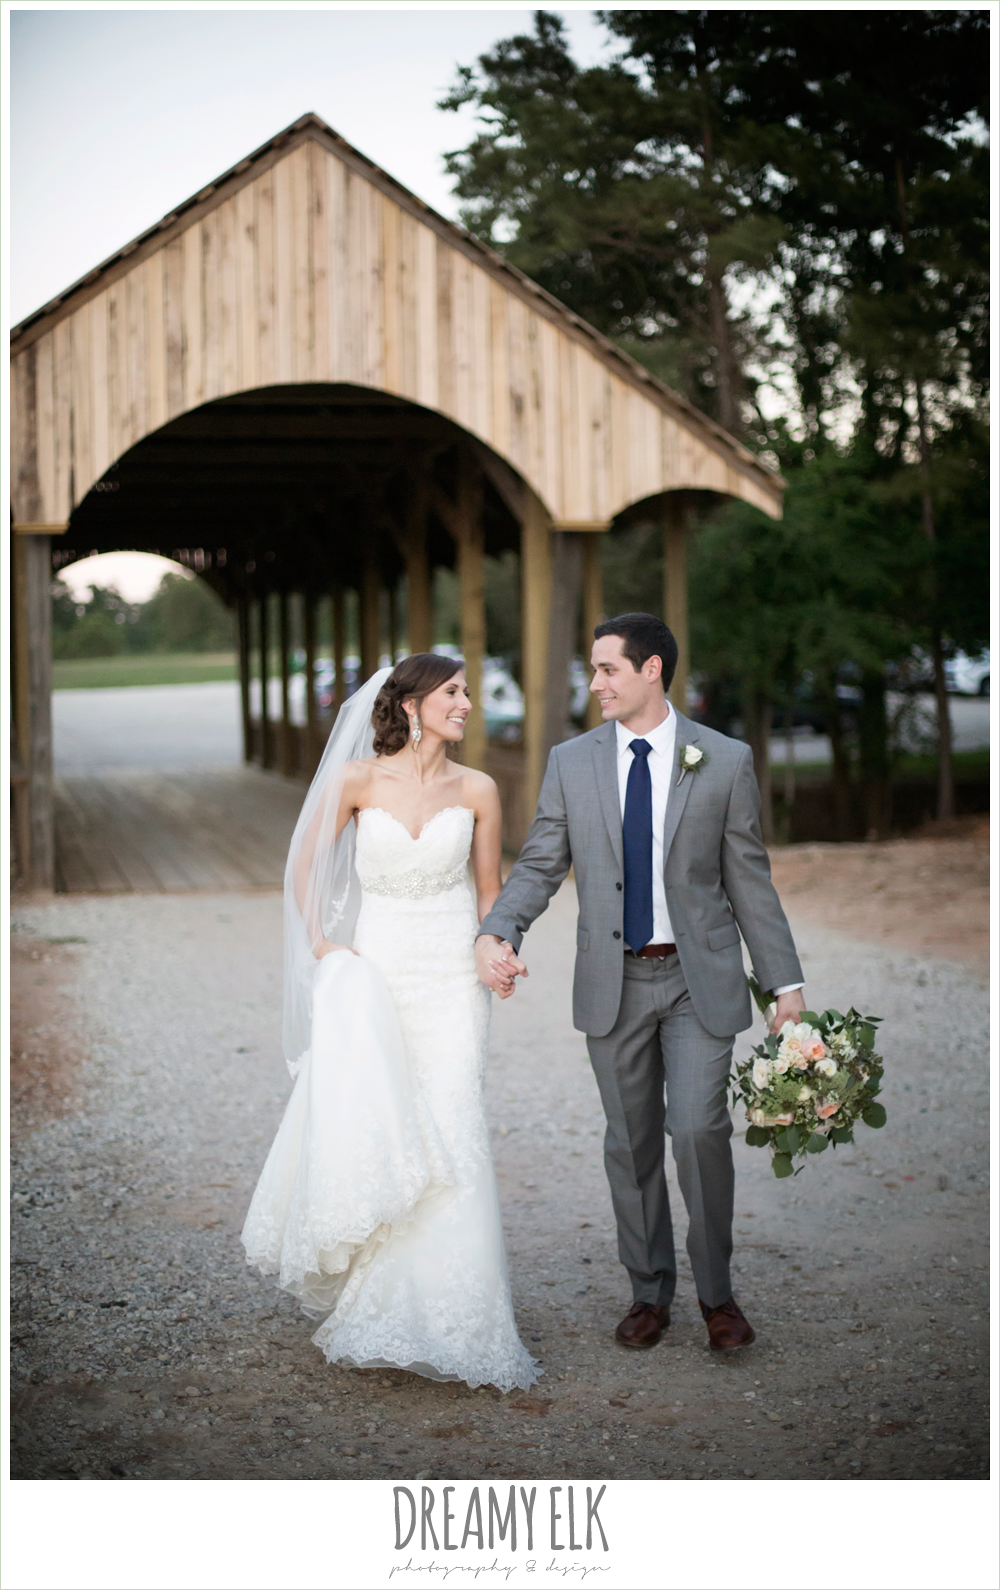 bride and groom, sweetheart lace wedding dress, gray suit, mulberry bridesmaids dresses, rustic chic, spring wedding photo, big sky barn, montgomery, texas {dreamy elk photography and design}